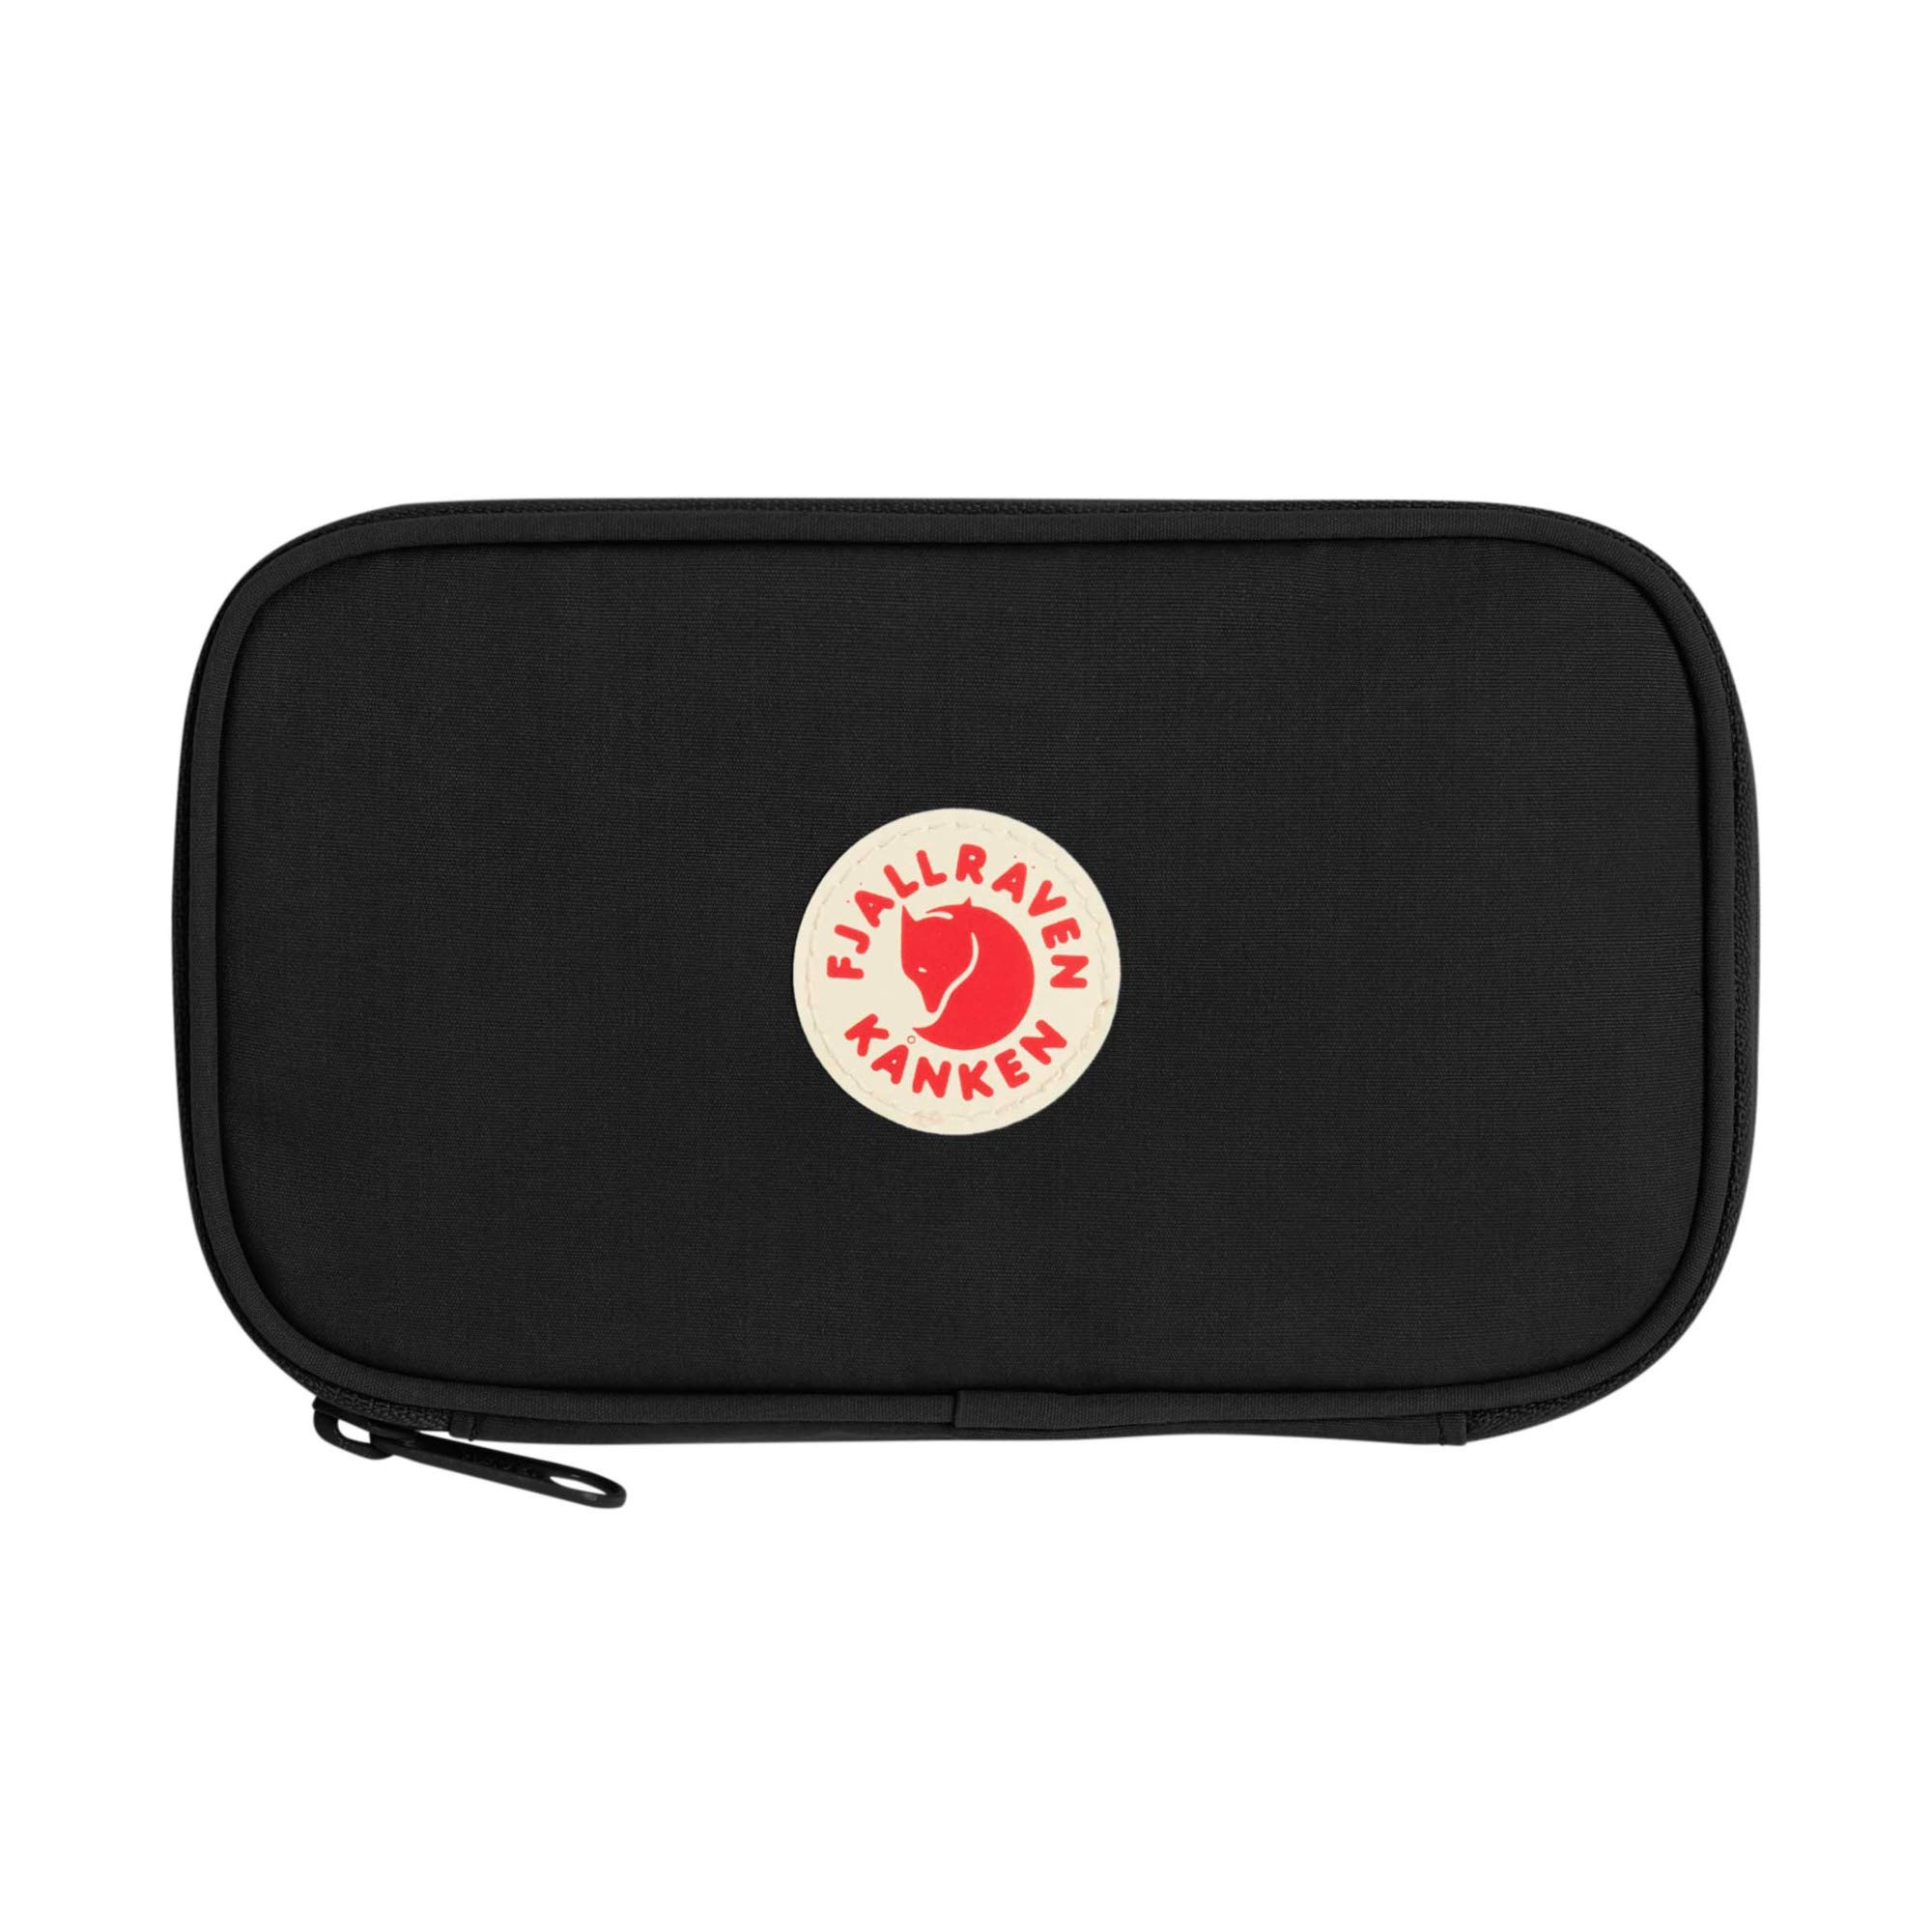 Fjällräven Kånken Travel Wallets and Small Bags, Black, OneSize